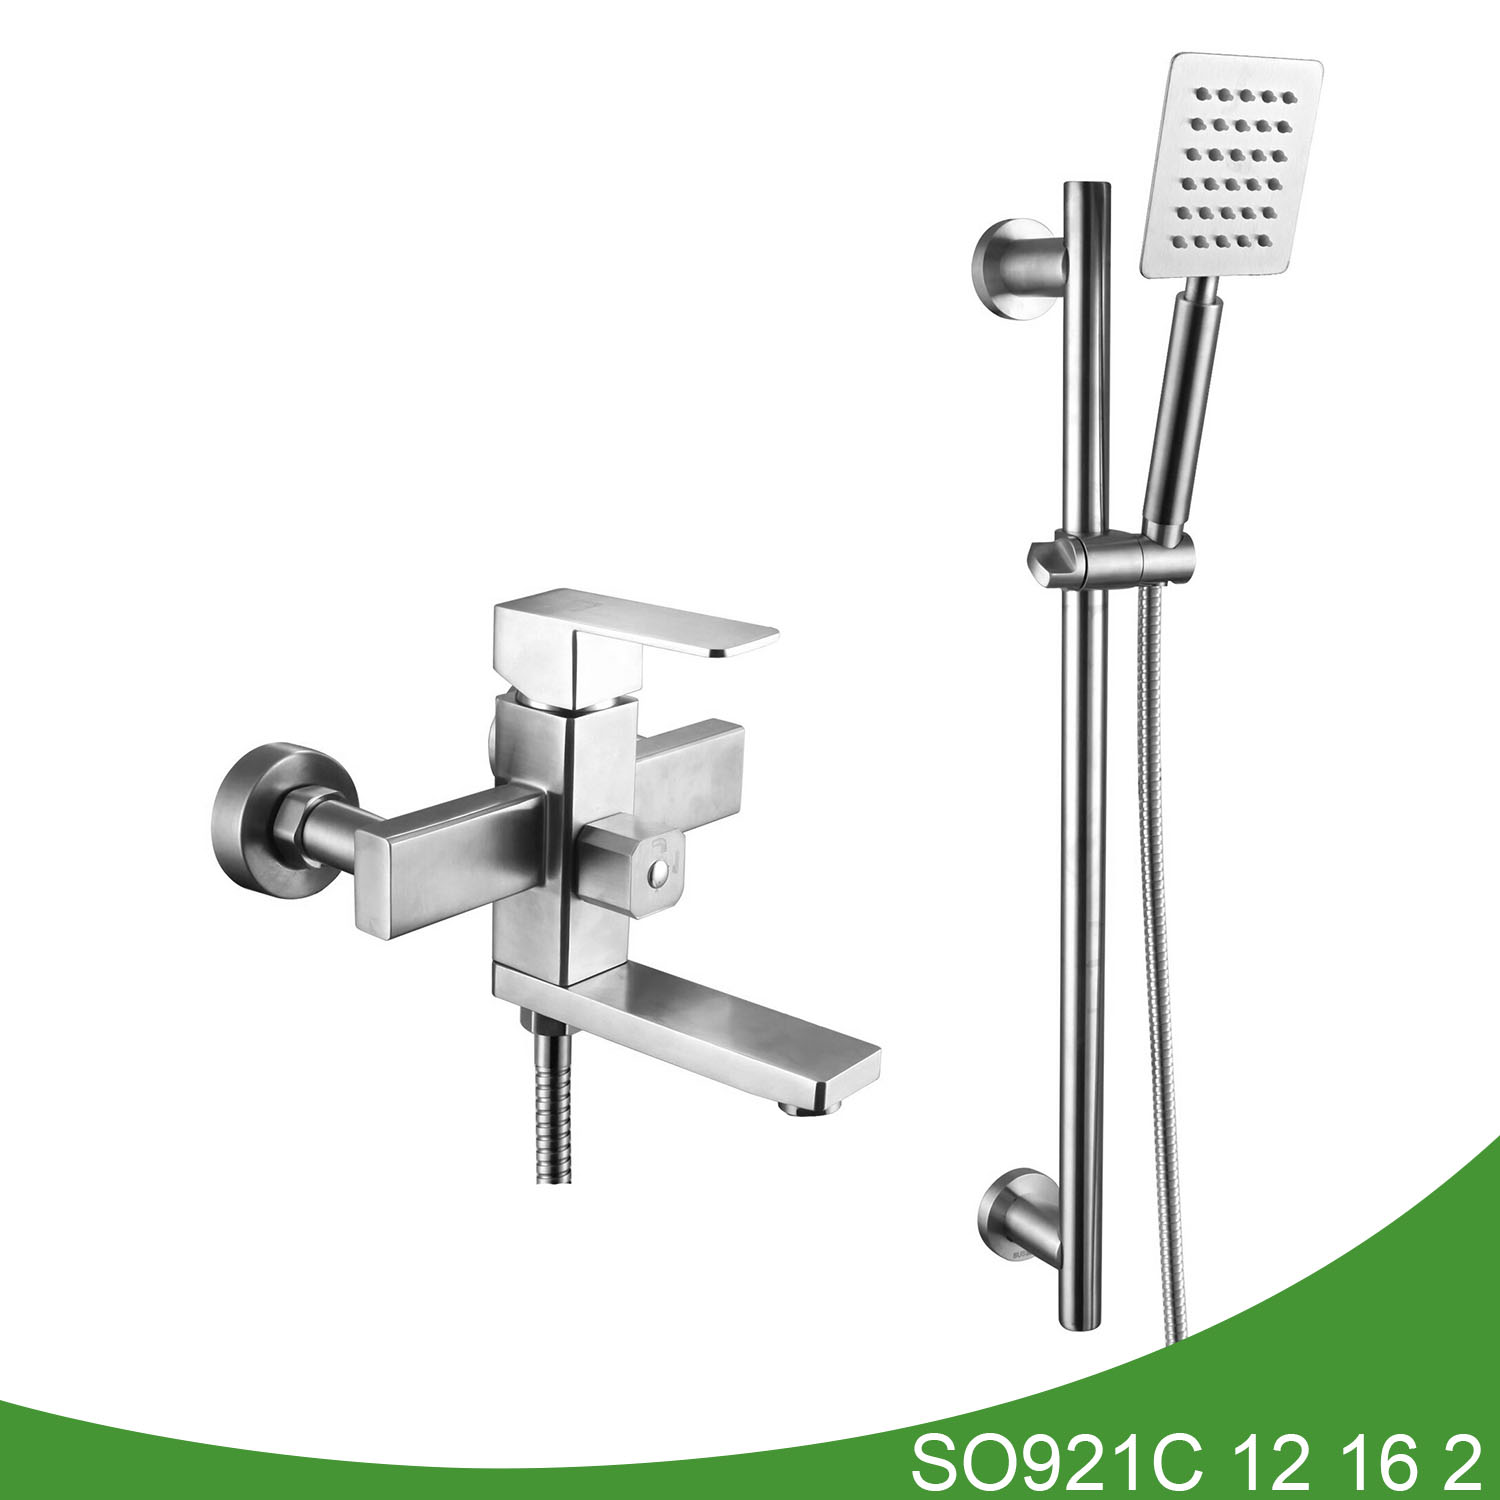 Stainless steel shower mixer SO921C 12 16 2